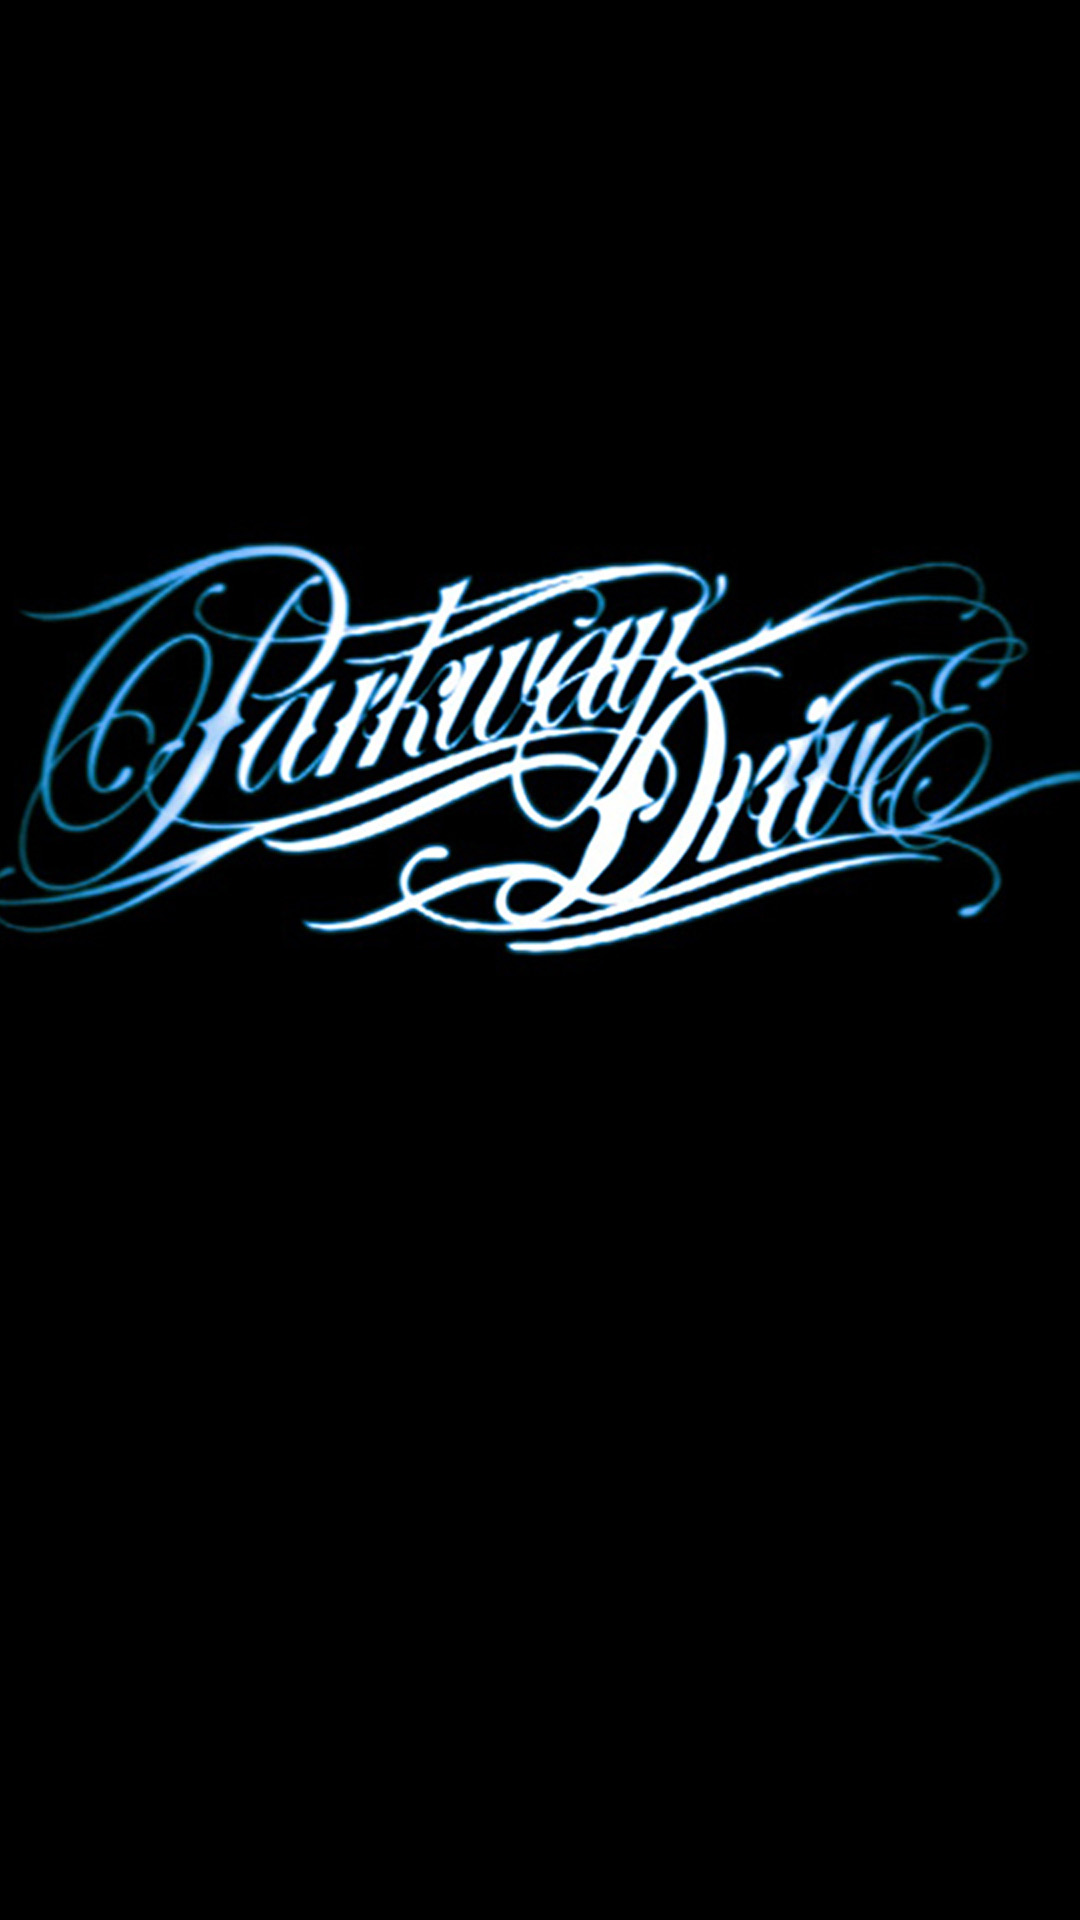 Hd wallpapers for iphone 6 - Parkway Drive Hd Wallpaper Iphone 6 Plus